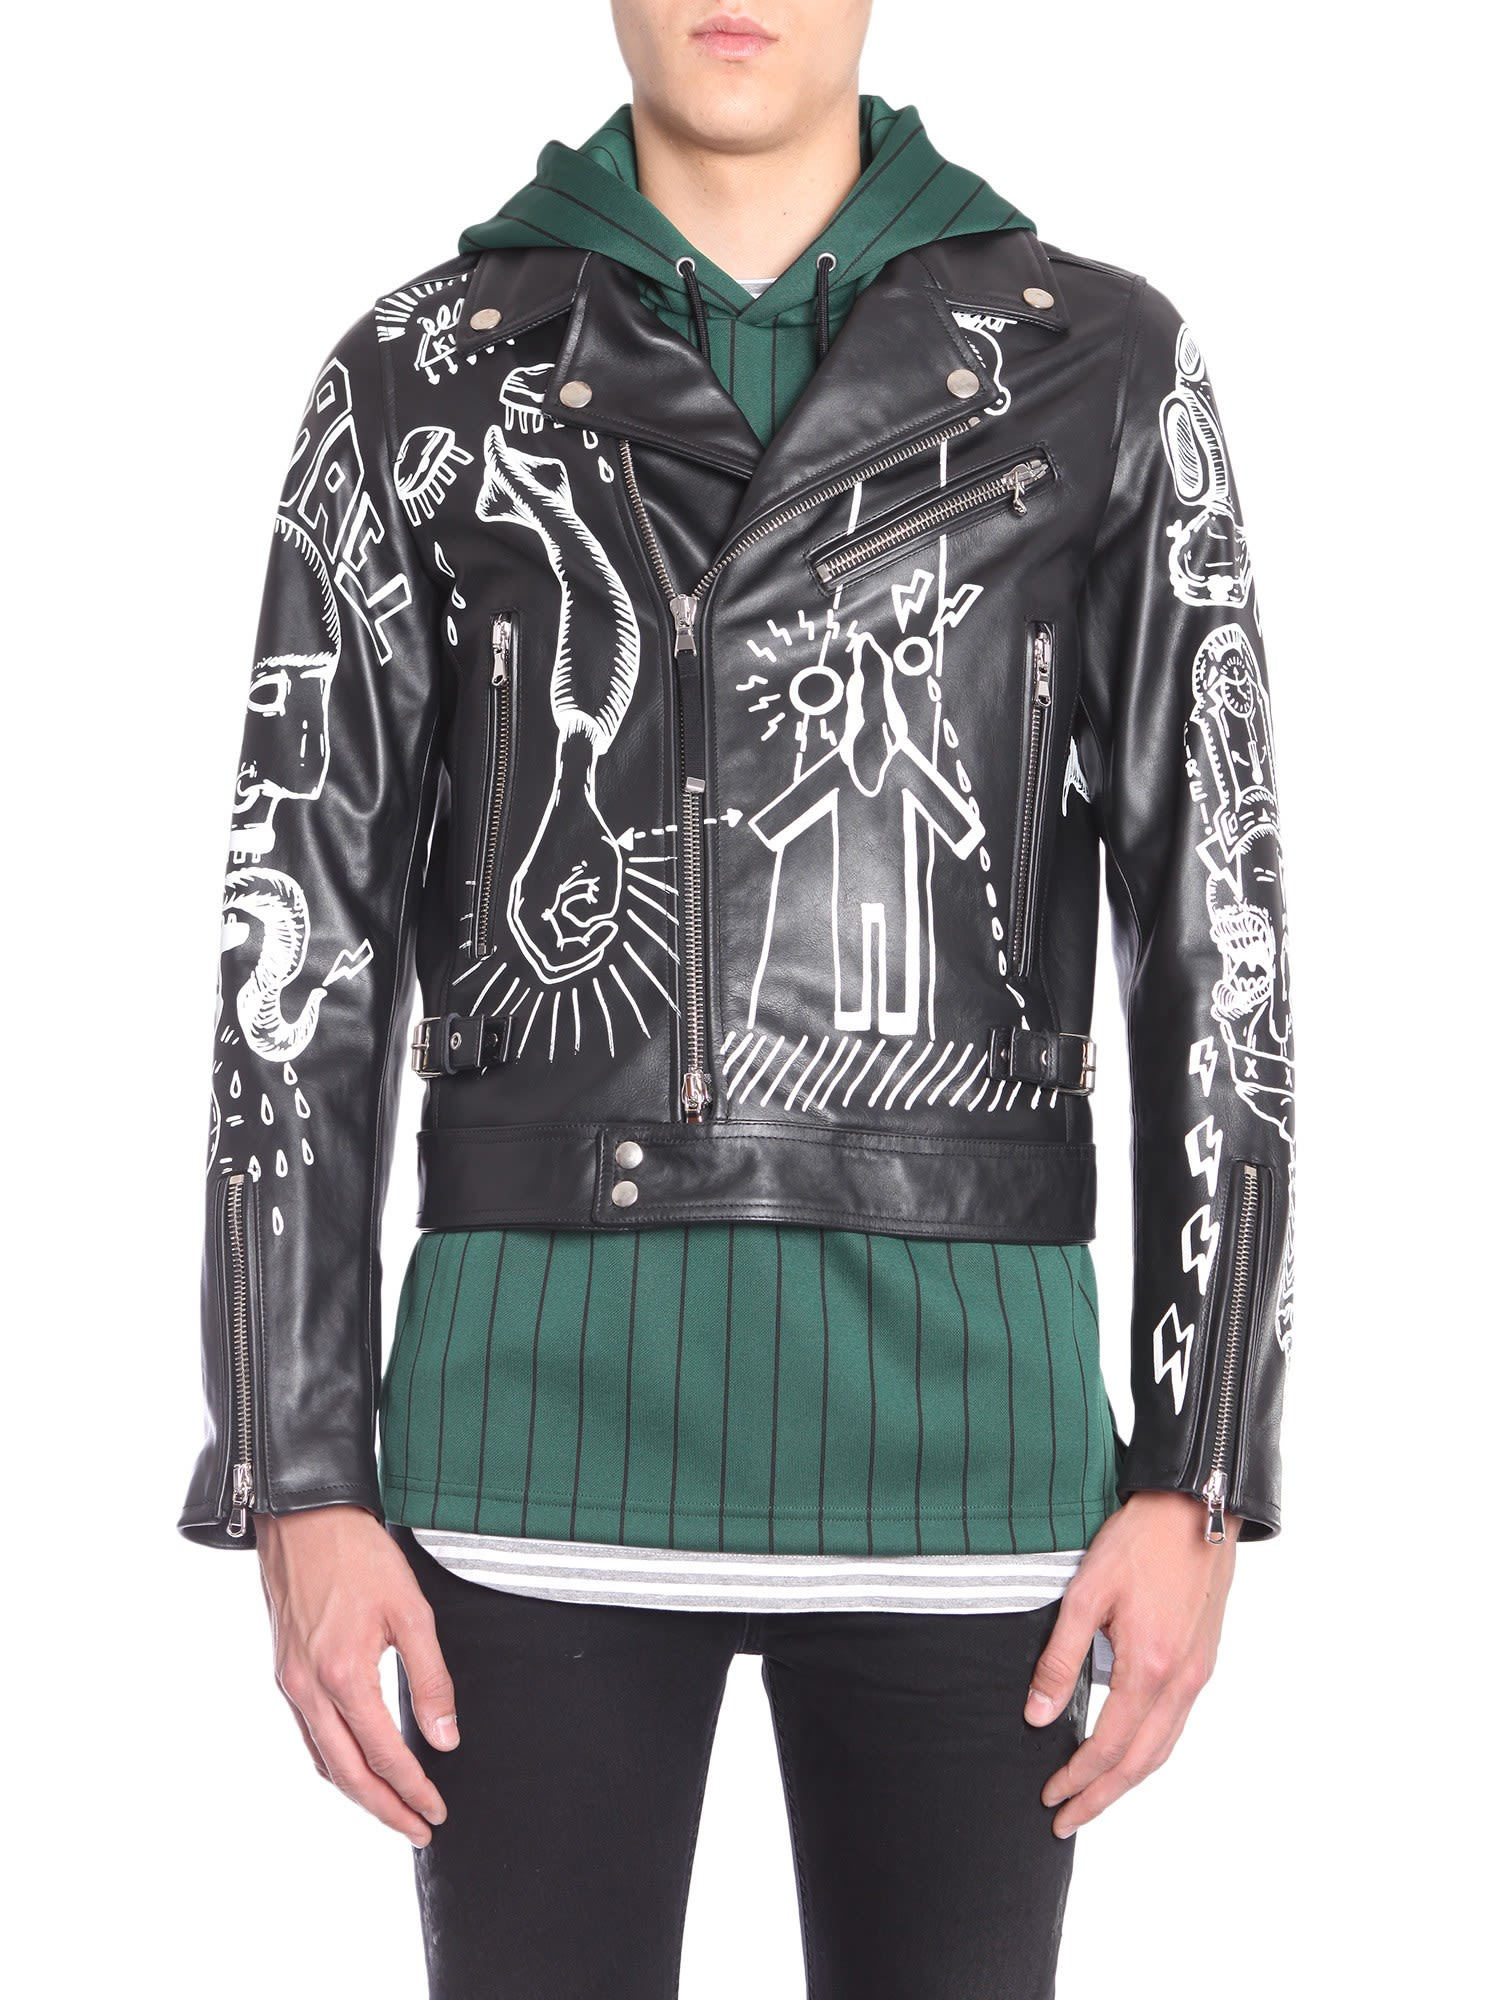 DIESEL BLACK GOLD Black Leather Jacket With Graffiti Print